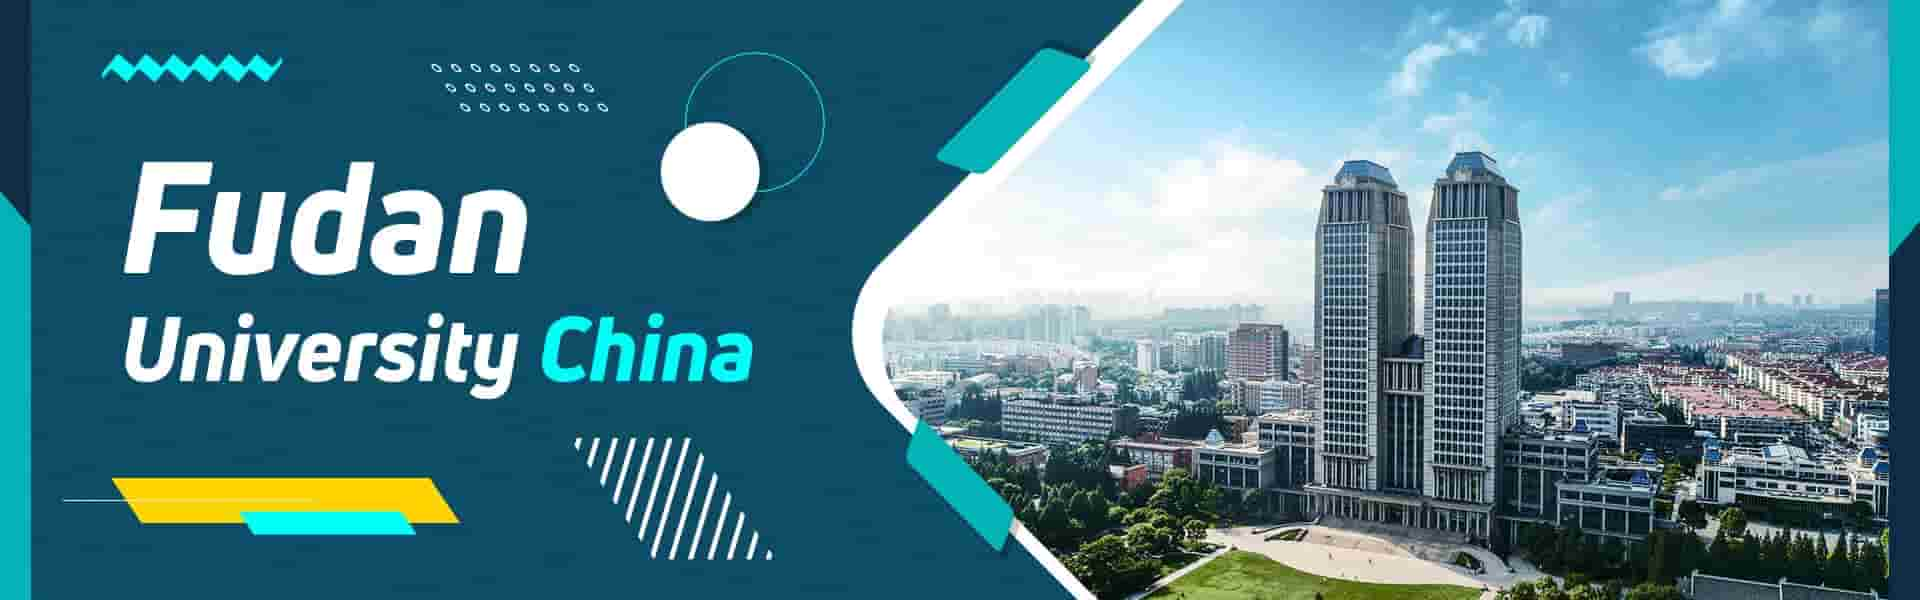 Fudan University MBBS Fees 2021 for Indian Students